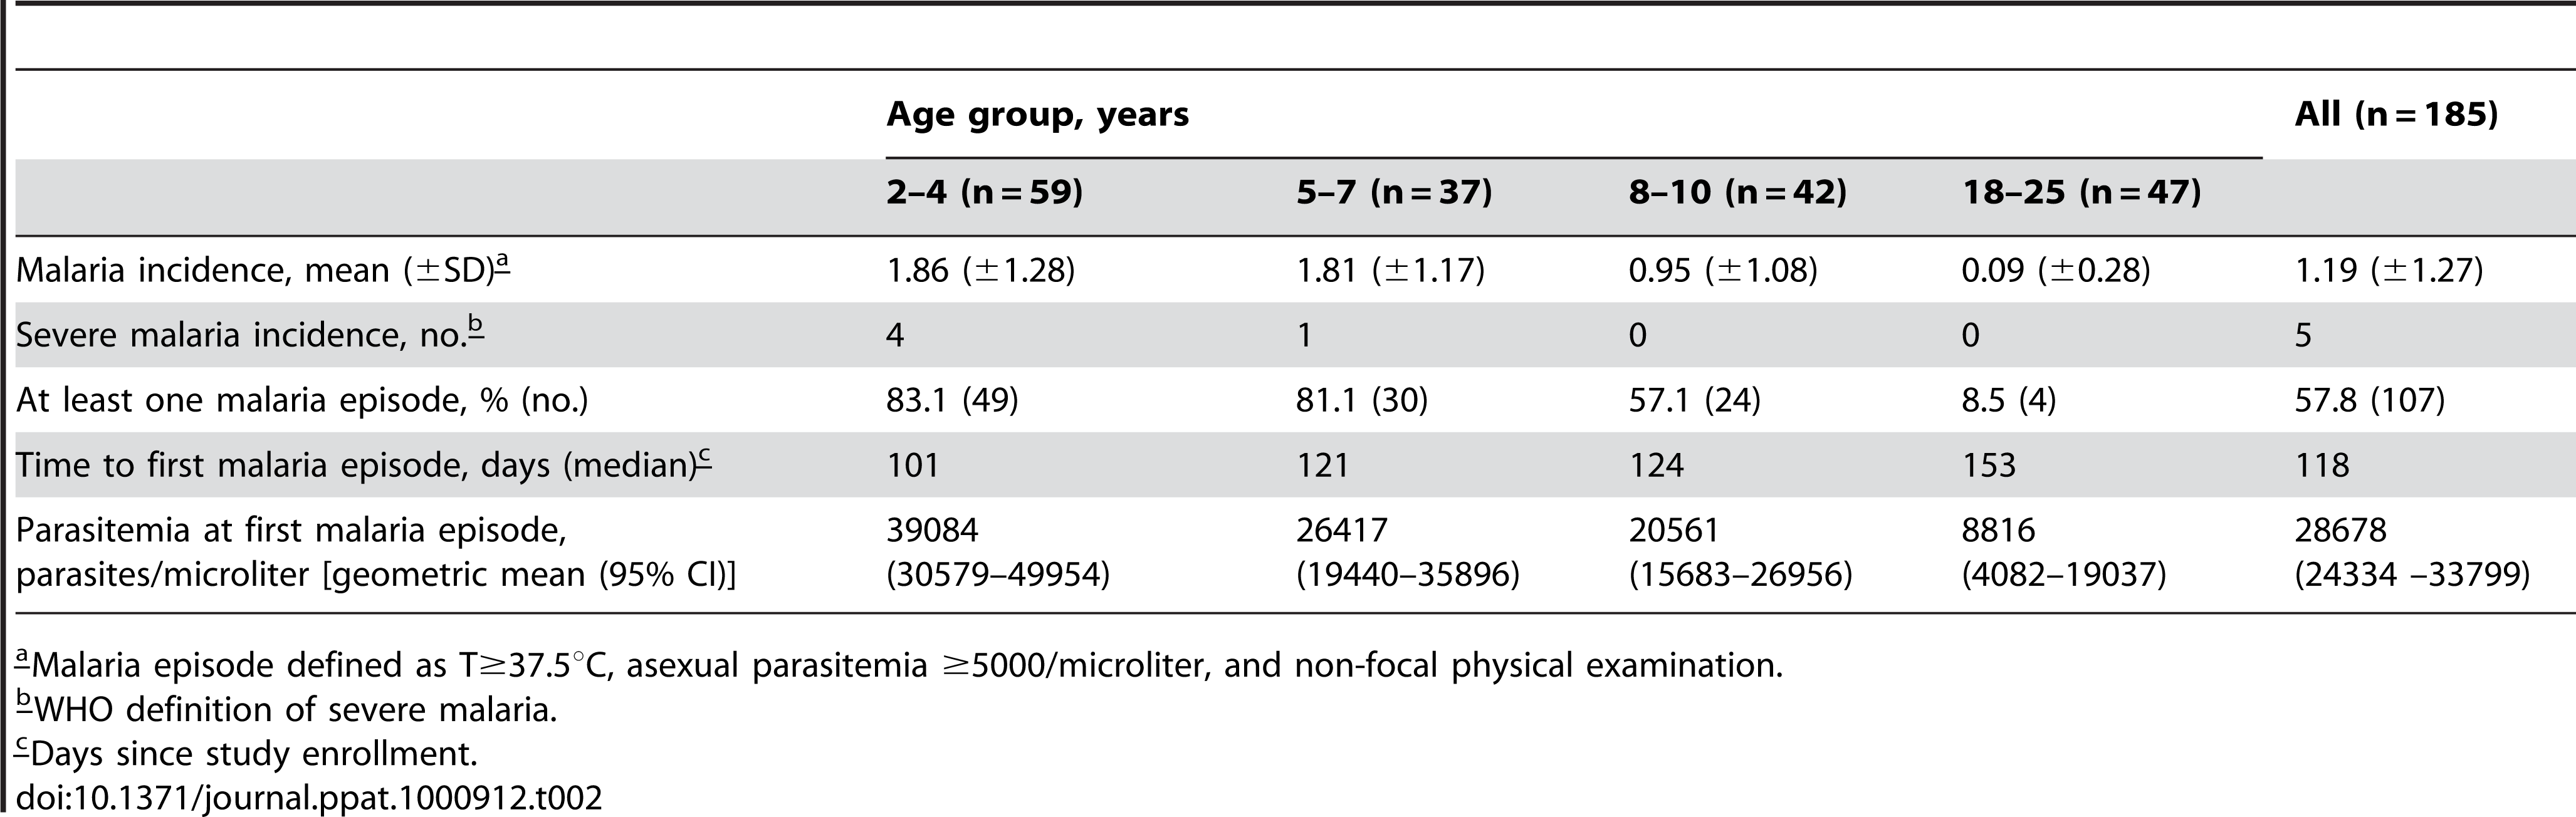 Malaria clinical outcomes by age group.